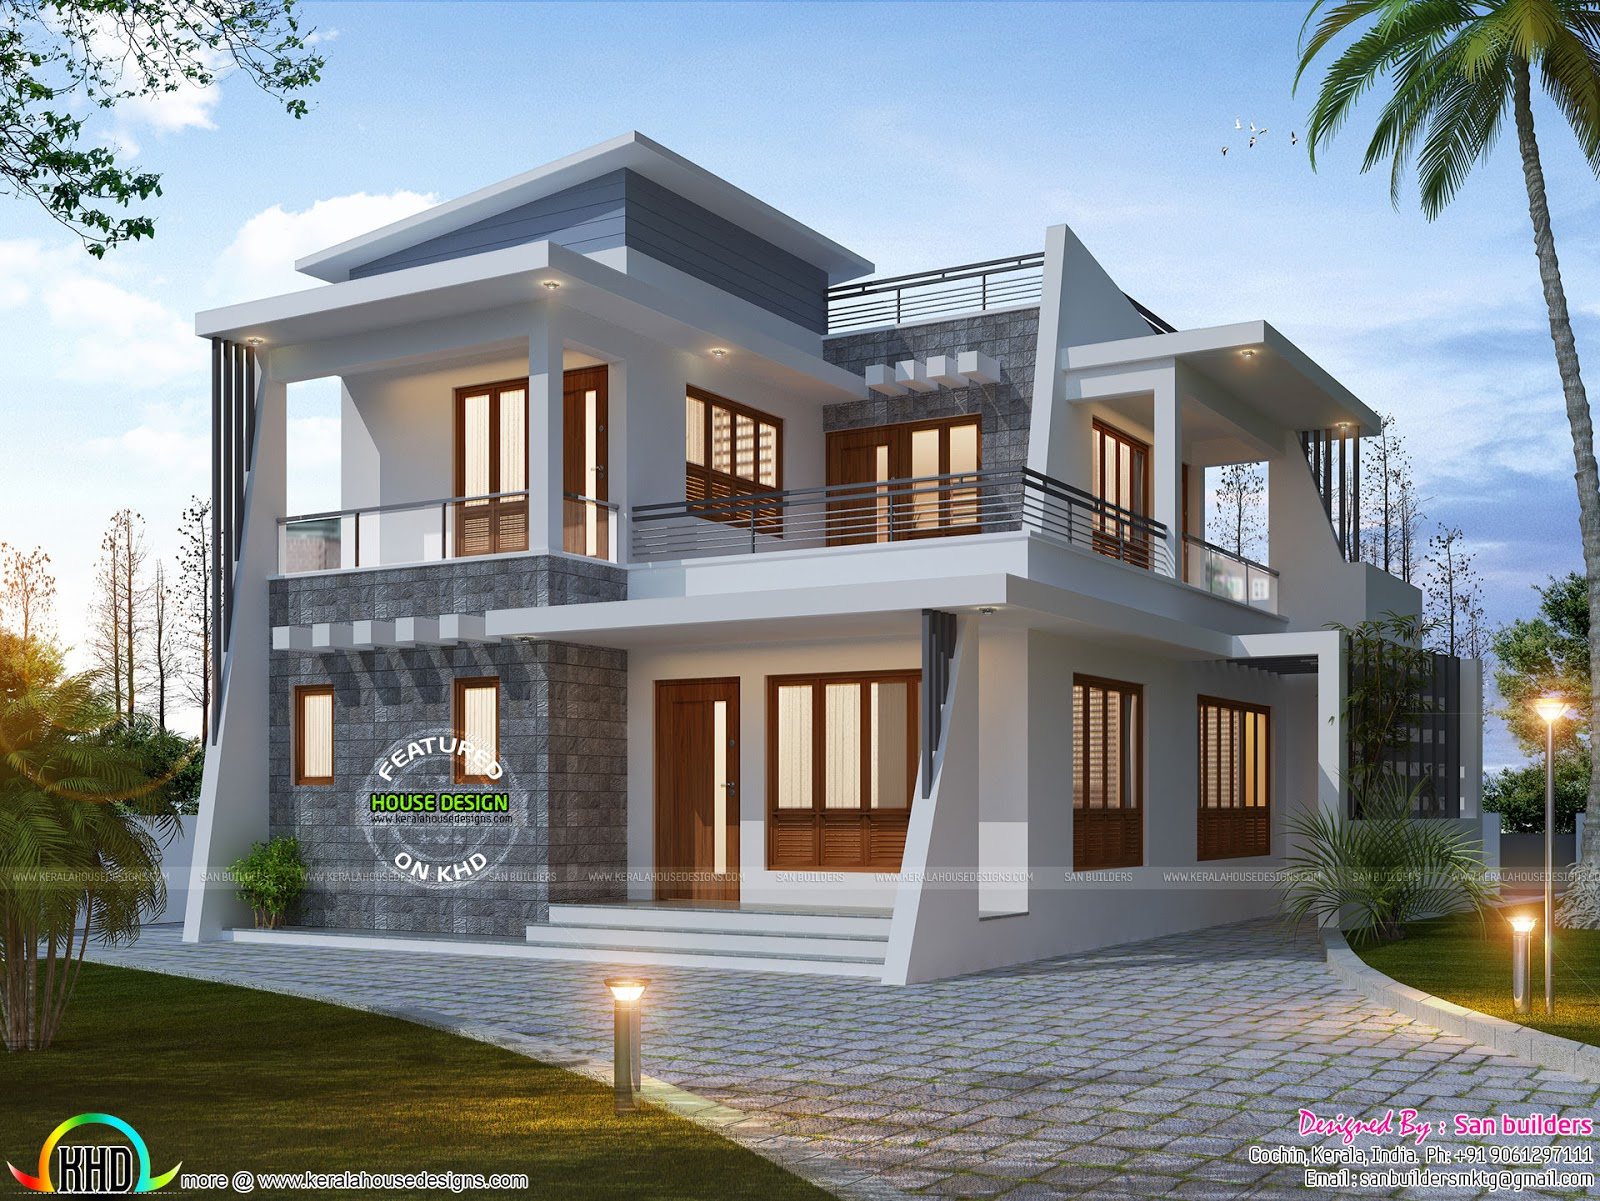 4 bedroom modern home 1885 sq ft kerala home design and for 4 bedroom house plans kerala style architect